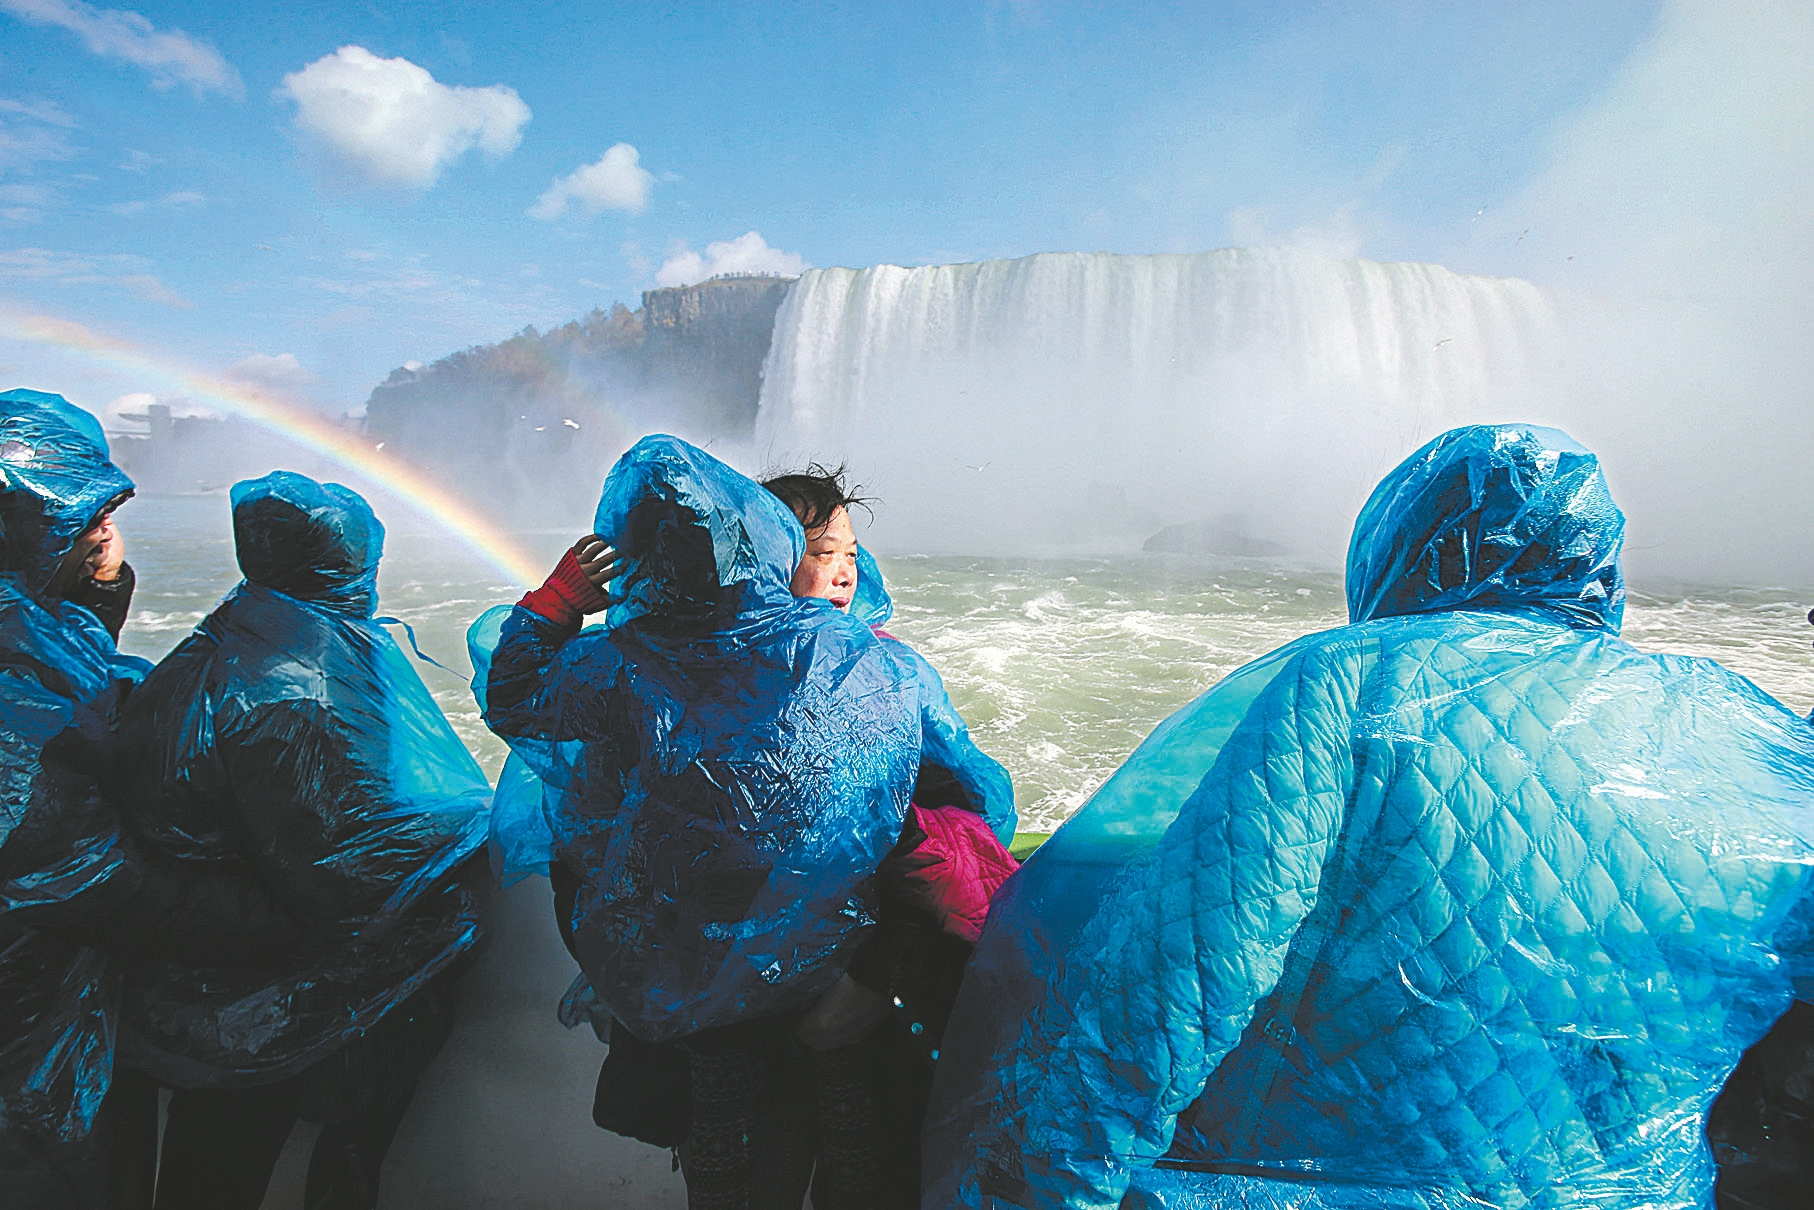 Passengers look at a rainbow over the American Falls from the Maid of the Mist on the next-to-last day of operations from the Canadian side of the river on Wednesday.